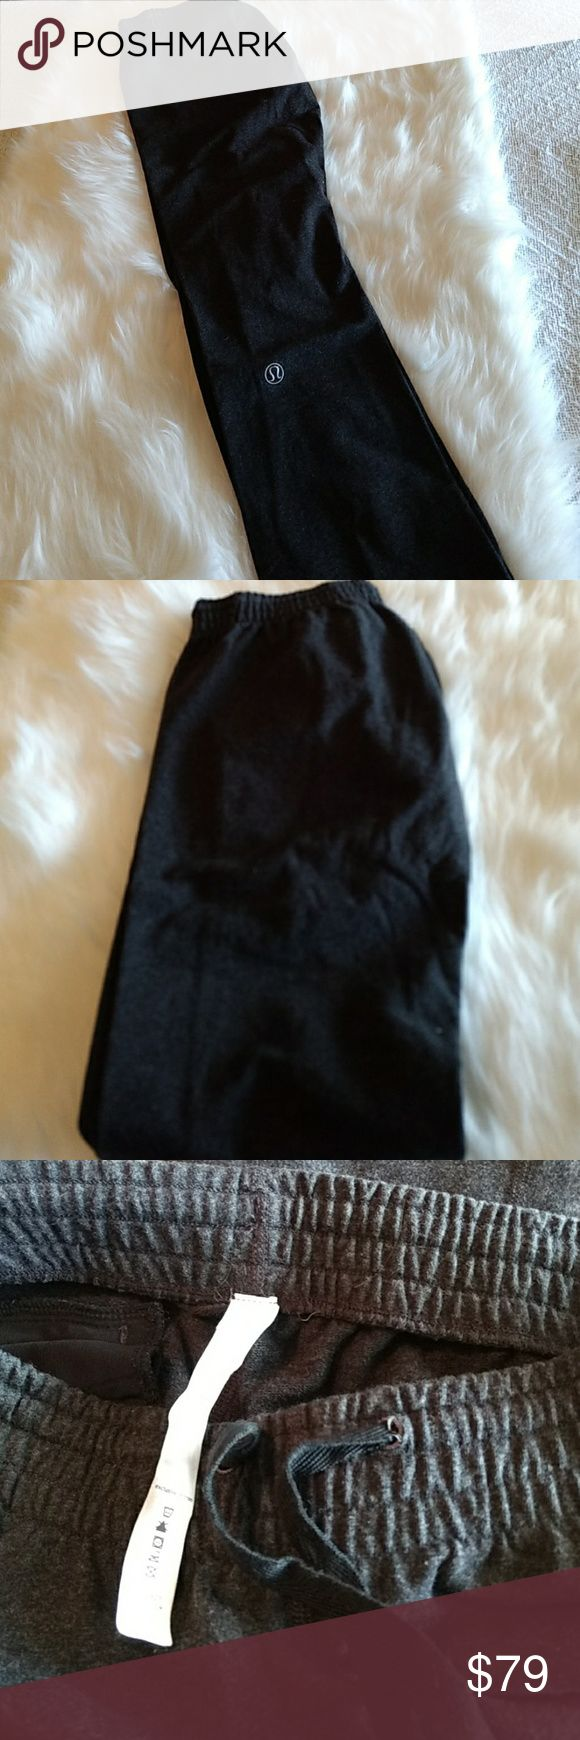 Lululemon Sweat Pants EUC sz 6 Very nice pair of sweats sz 6 grey. Drawstring waist and elastic bottoms and very comfortable. These pants also have a back pocket with a zipper on the right cheek. These will fit a small sz 6 best. I'm now a sz 8 and they are too snug. lululemon athletica Pants Track Pants & Joggers